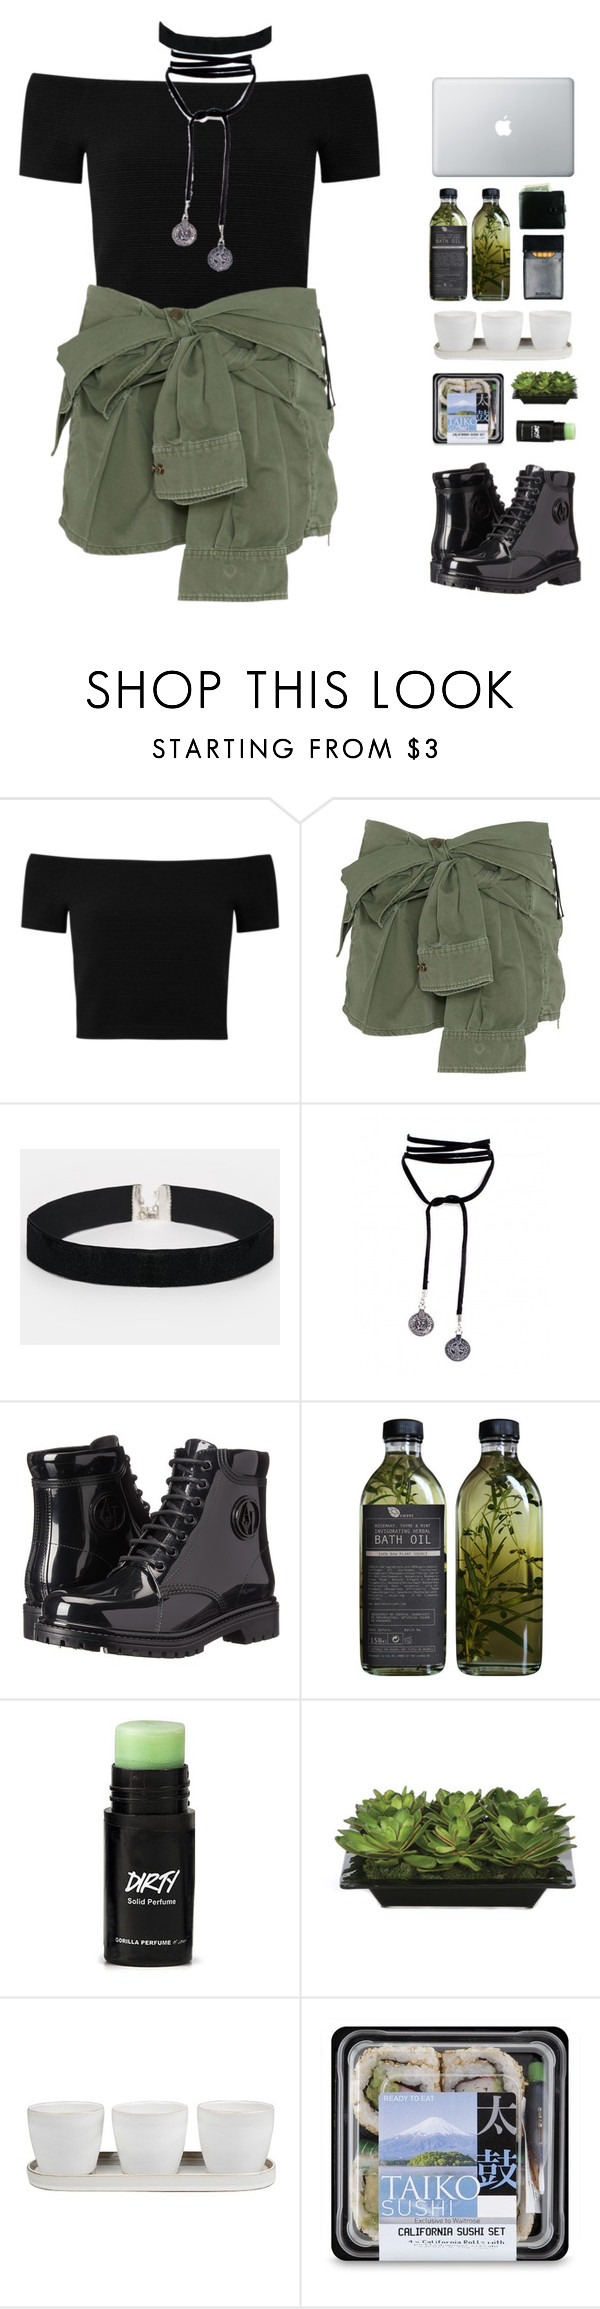 """Arctic Monkeys"" by lanadelnotyou ❤ liked on Polyvore featuring Alice + Olivia, Faith Connexion, ASOS, Armani Jeans, Lux-Art Silks and Threshold"